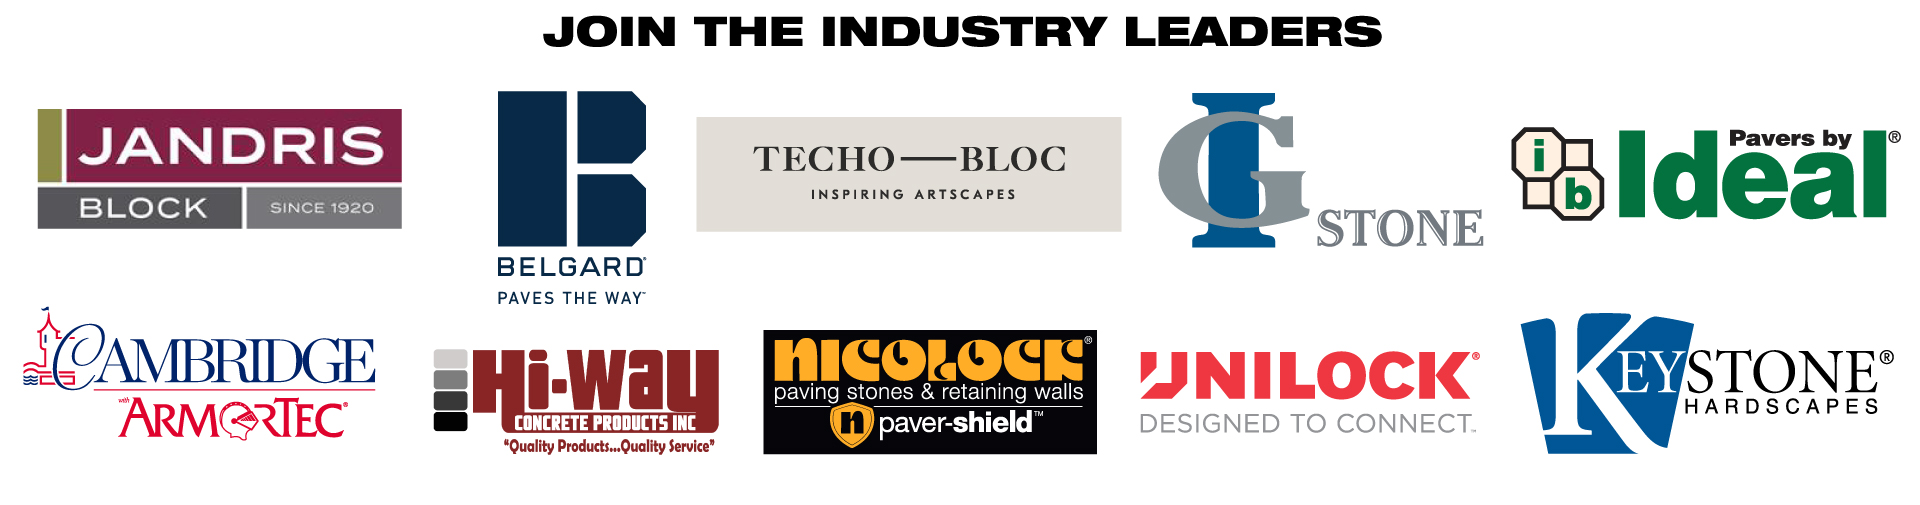 Join the Industry Leaders